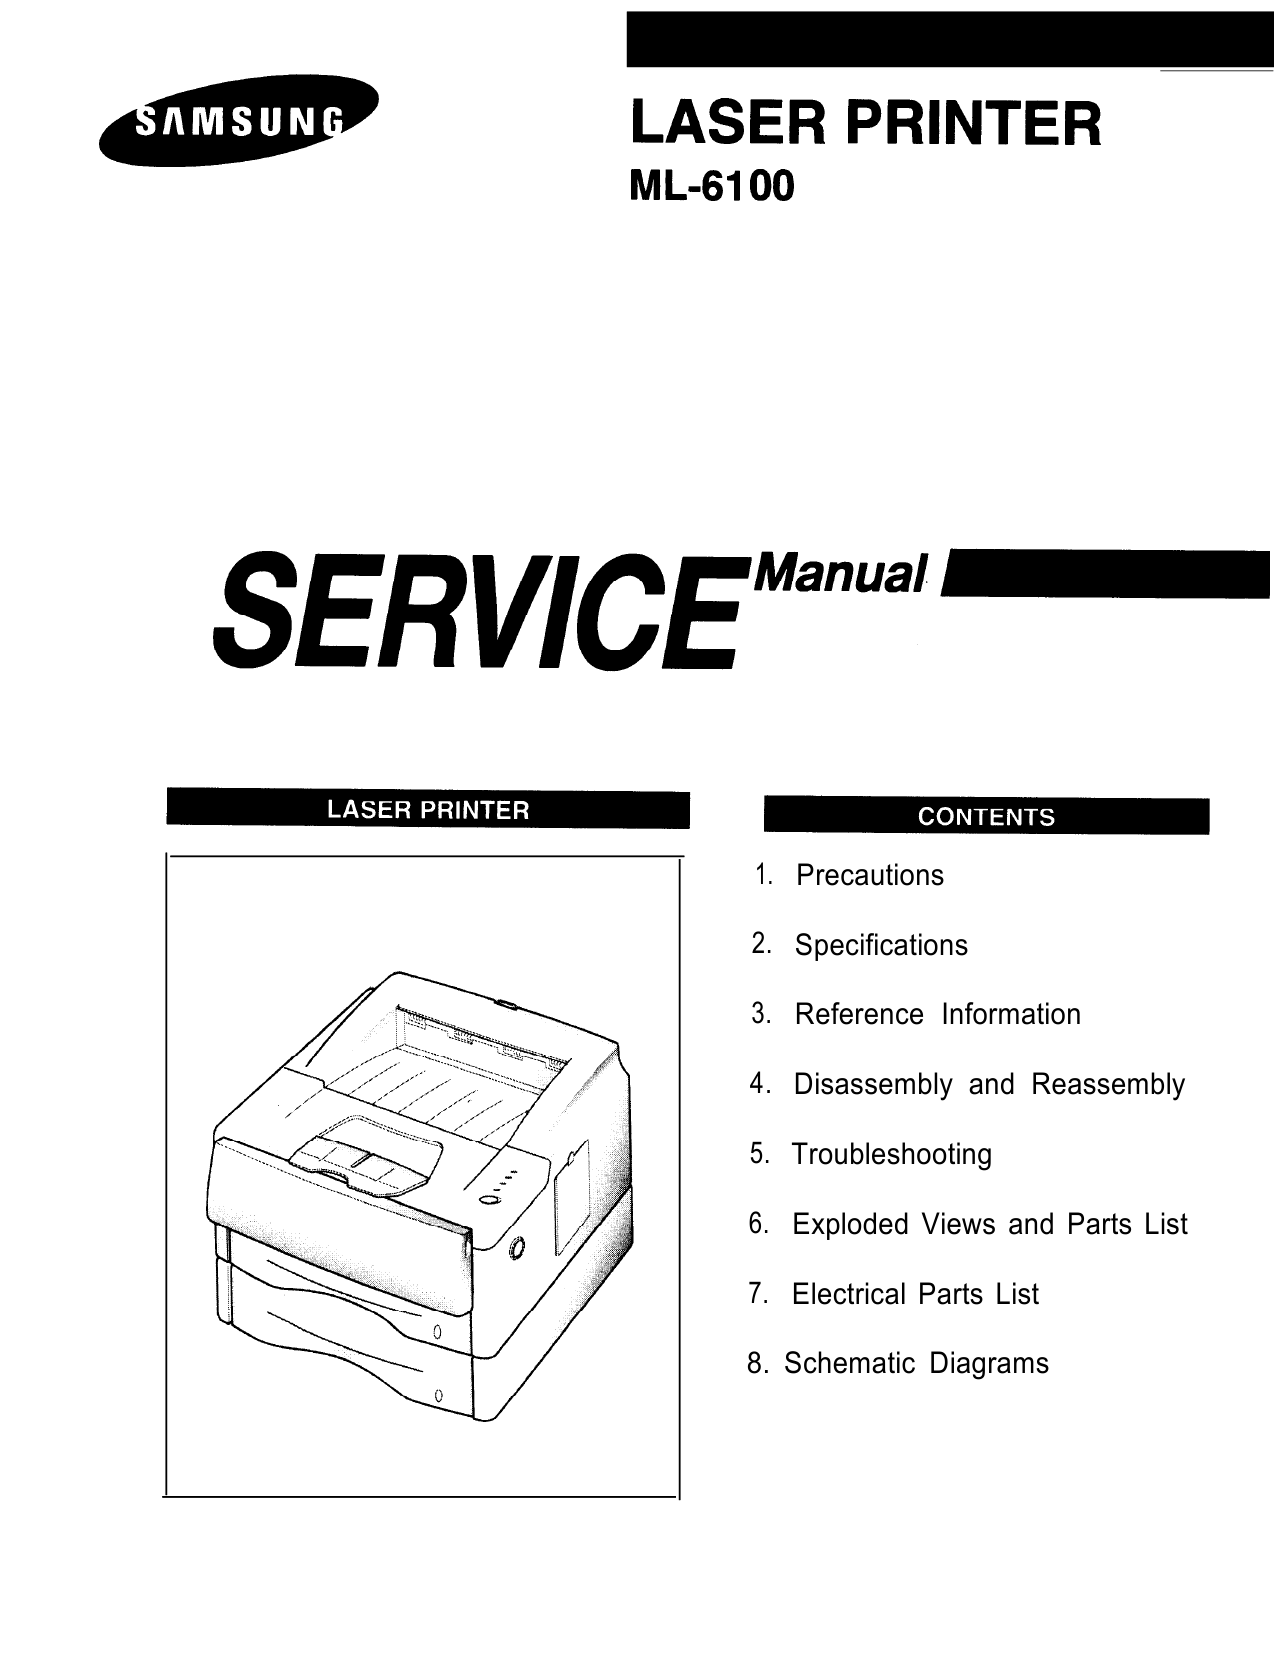 Samsung Laser-Printer ML-6100 Parts and Service Manual-1